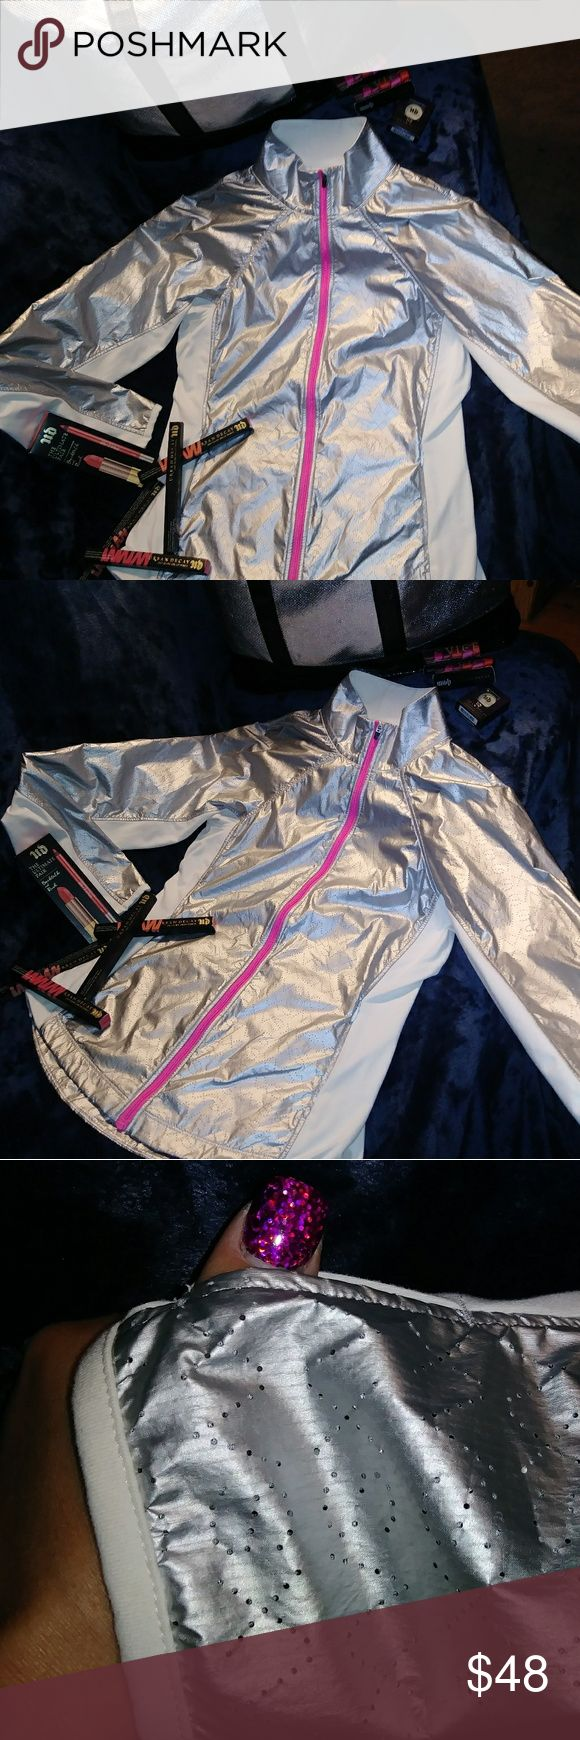 Pink victorias secret vsx sexy sport bling jacket Flawless! Shiny Silver w/ white stretchy material hugs & holds you in where need be and yet still accentuates the curves. Size XS but fits up to a small even a medium because of the stretch Factor. Pink side and back zippers. Long sleeves w thumbholes. Grab it quick gals before i give it as a gift to my half sister for christmas. She like I just adore it. #glamorous   *I do love a good ole fashion Offer. so just ask me any Q's you have. Show…